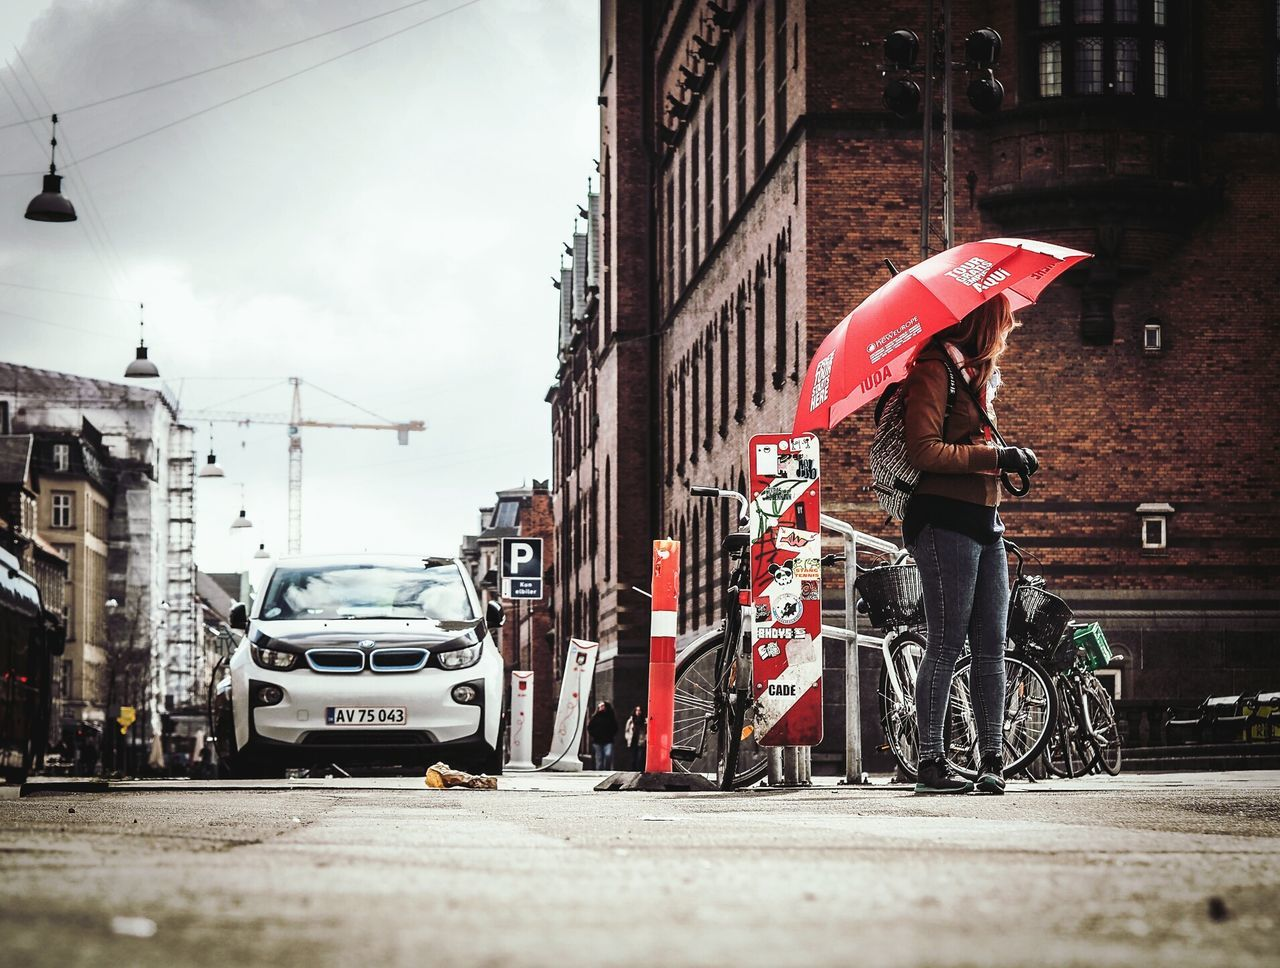 The red Umbrella 2/3 Here Belongs To Me Copenhagen From My Point Of View City Cityscape City Life Olympus OM-D E-M5 Mk.II Olympusomd Olympus Shootermag People People Of EyeEm People Watching Street Life Street Street Photography Streetphotography Woman Guide Umbrella Red Urban Low Angle View Urban Lifestyle Storytelling